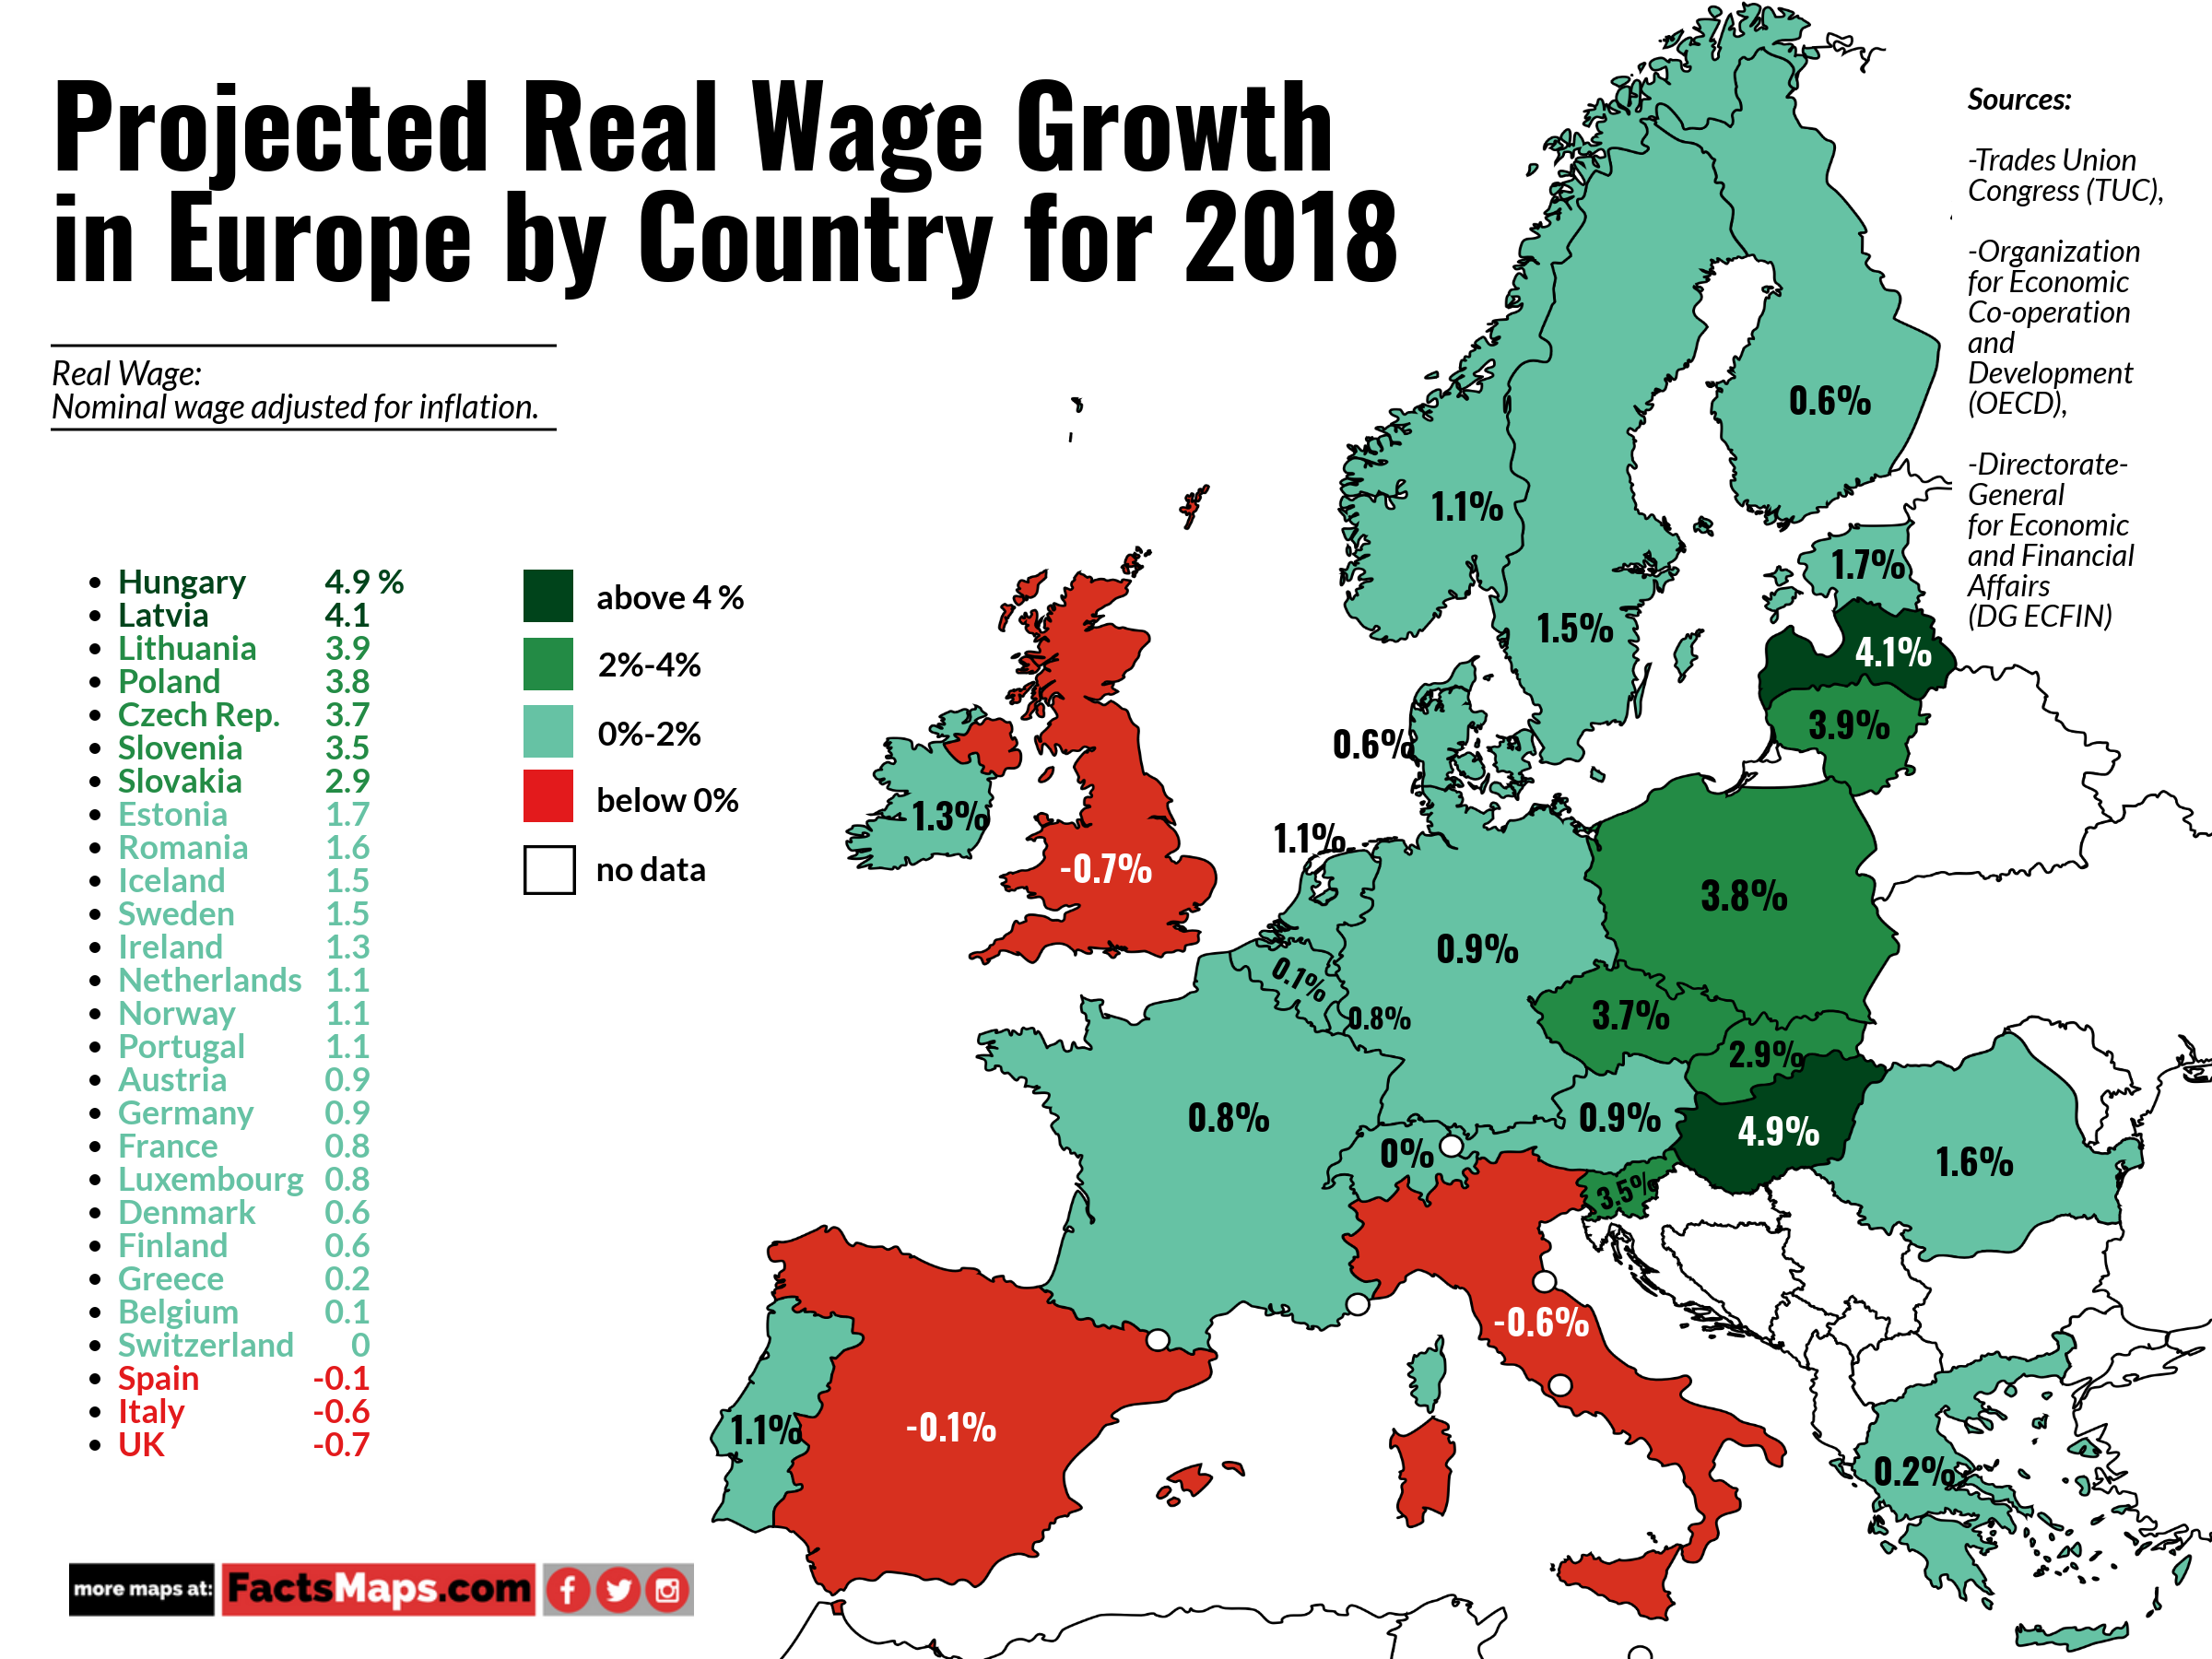 Projected Real Wage Growth In Europe By Country For 2018